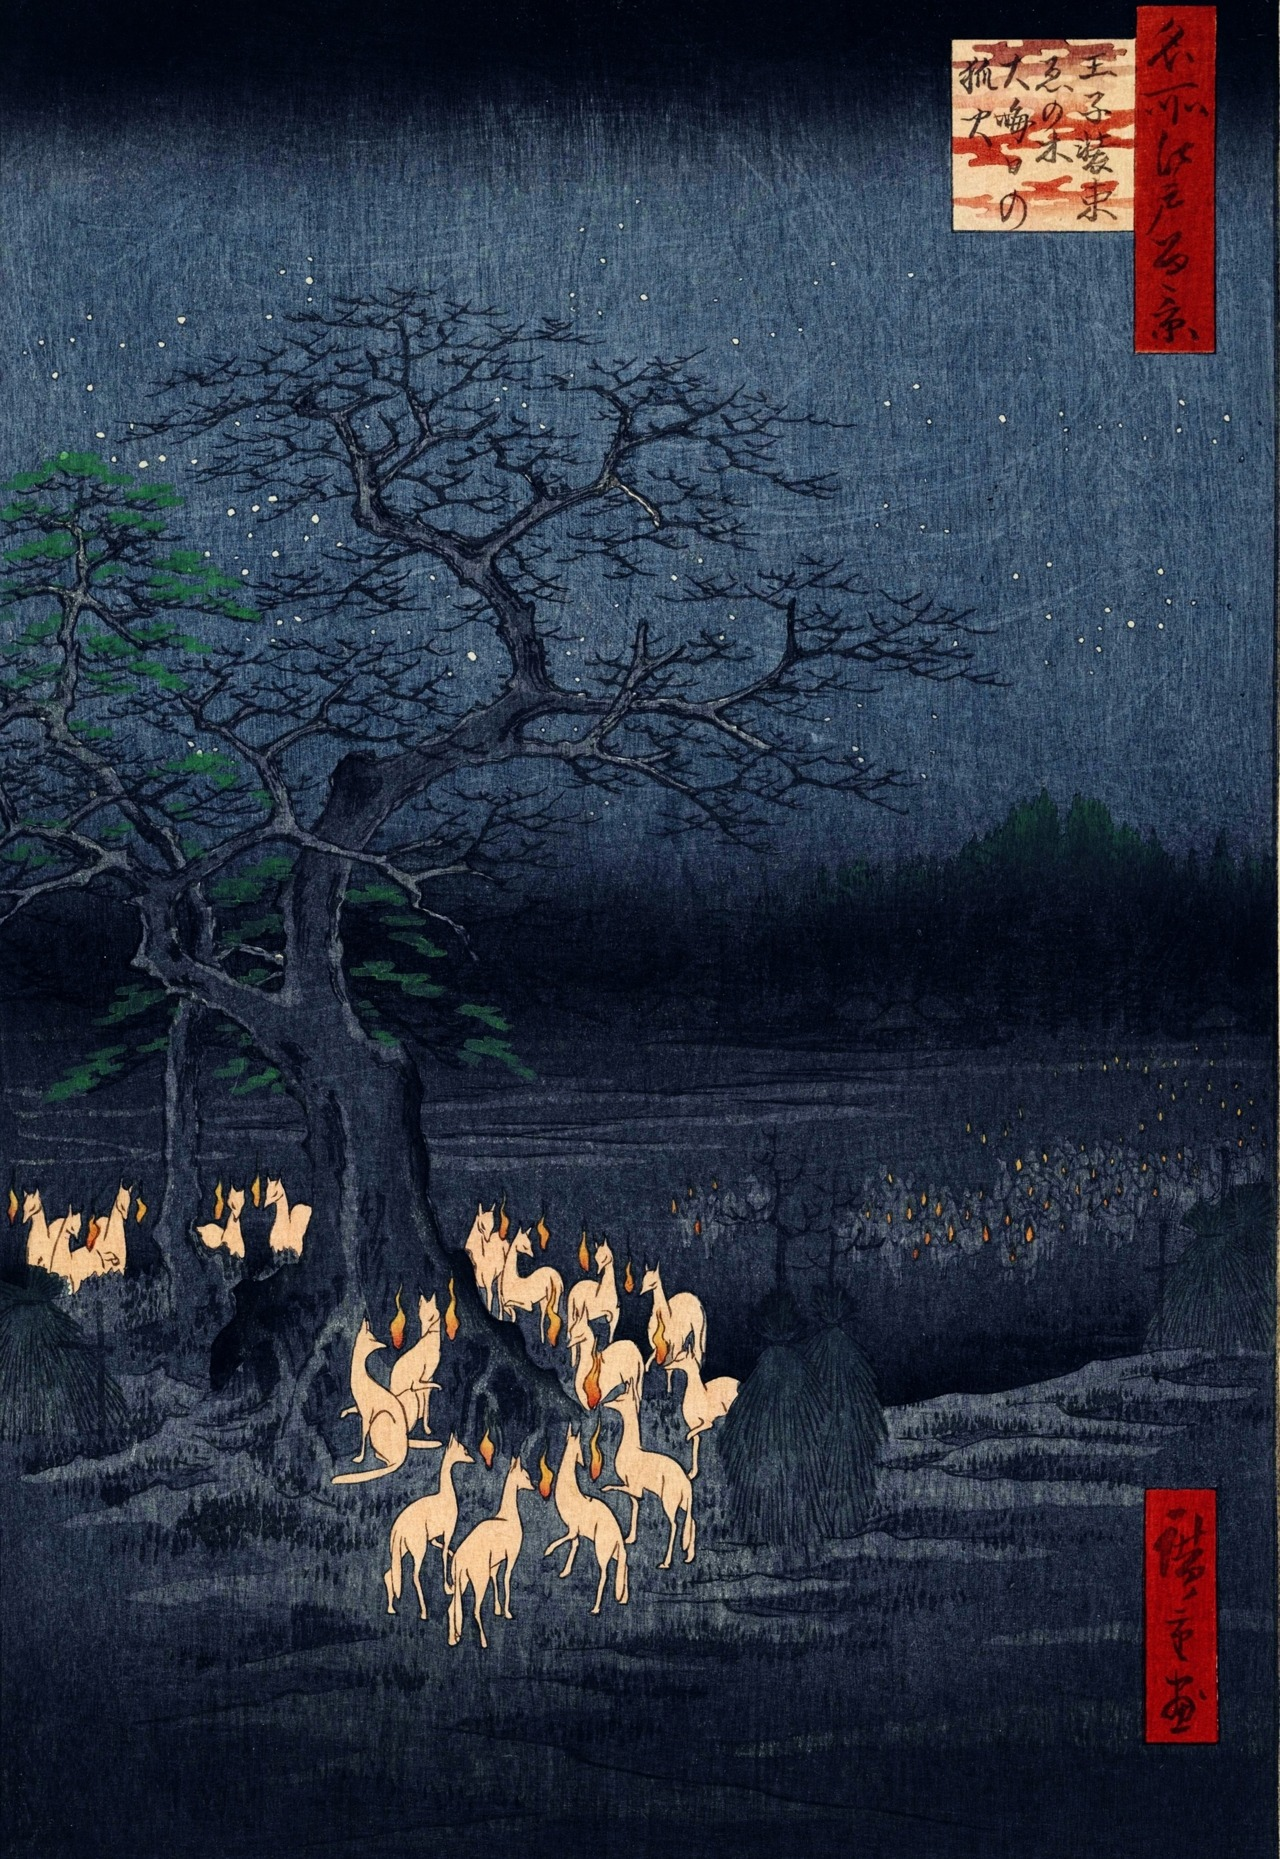 narcissusskisses:  Hiroshige: New Year's Eve foxfires at the changing tree, Oji, 1857